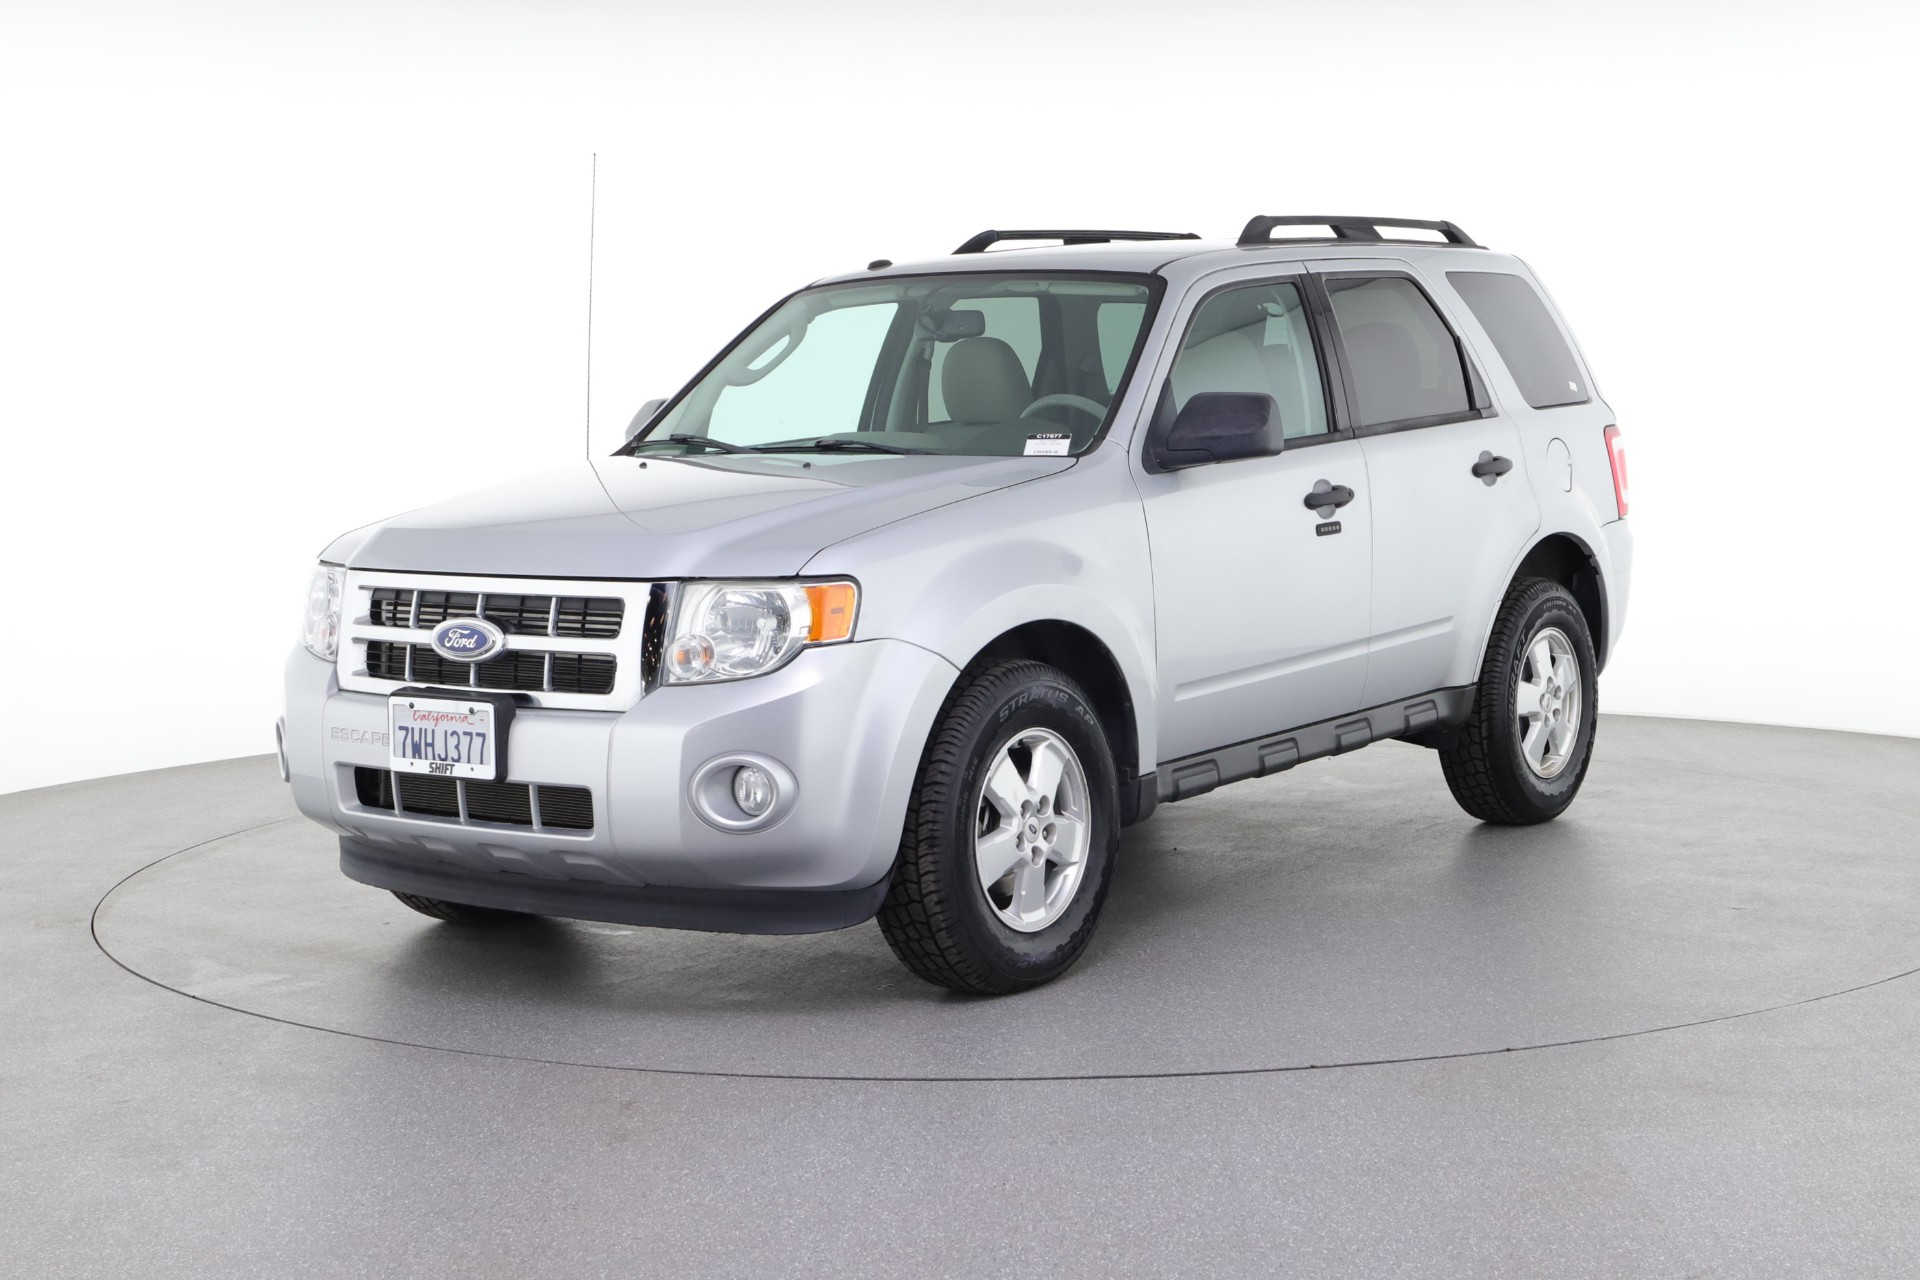 2011 Ford Escape XLT (from $9,950)